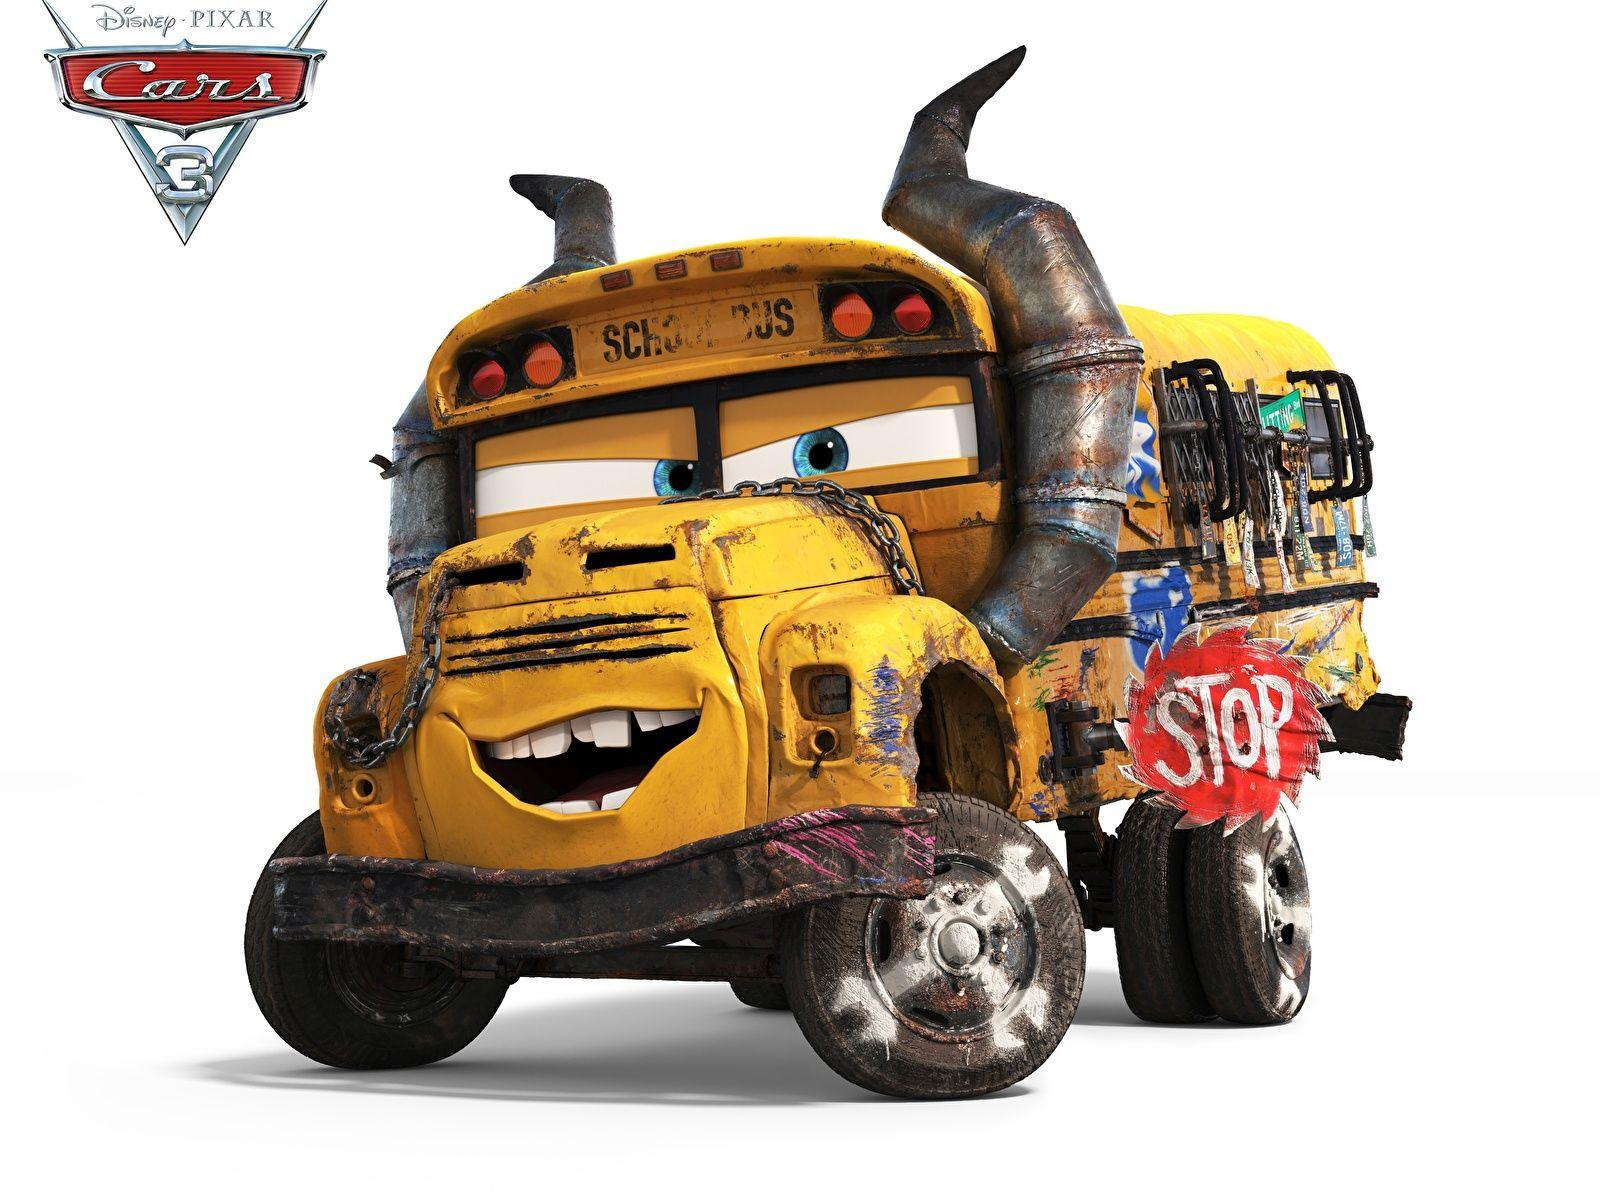 Wallpapers Cars 3 Bus school bus Cartoons White backgrounds 1600x1200